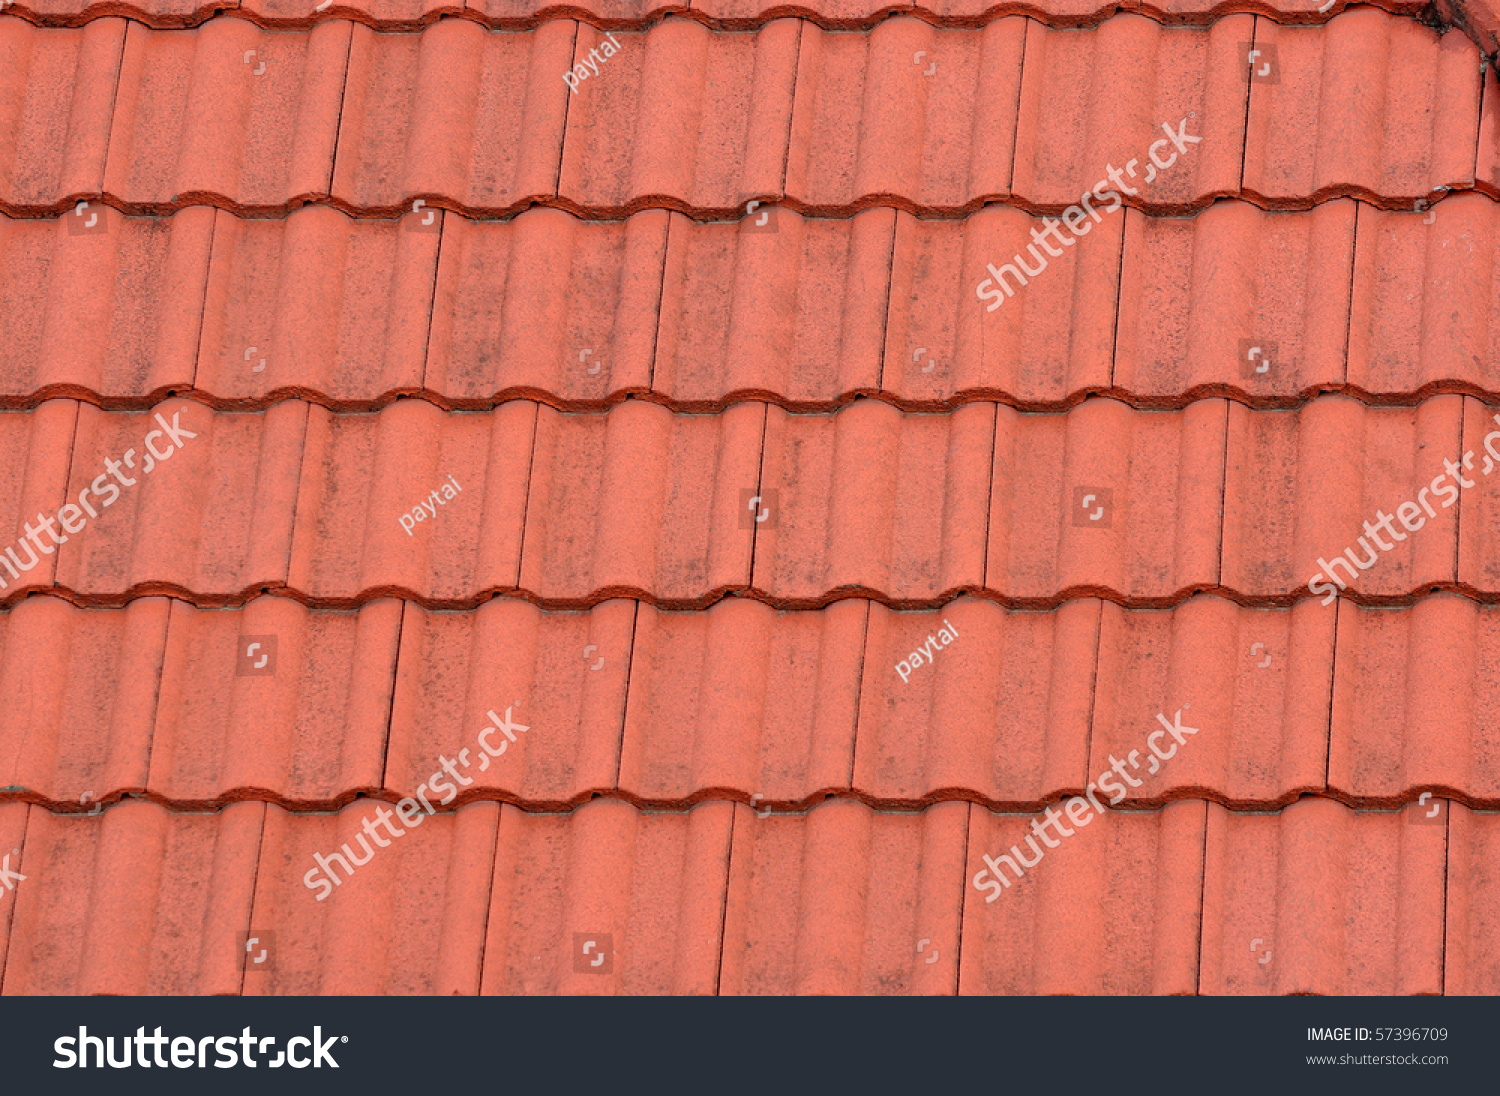 A roof tile pattern texture stock photo 57396709 for Roof tile patterns